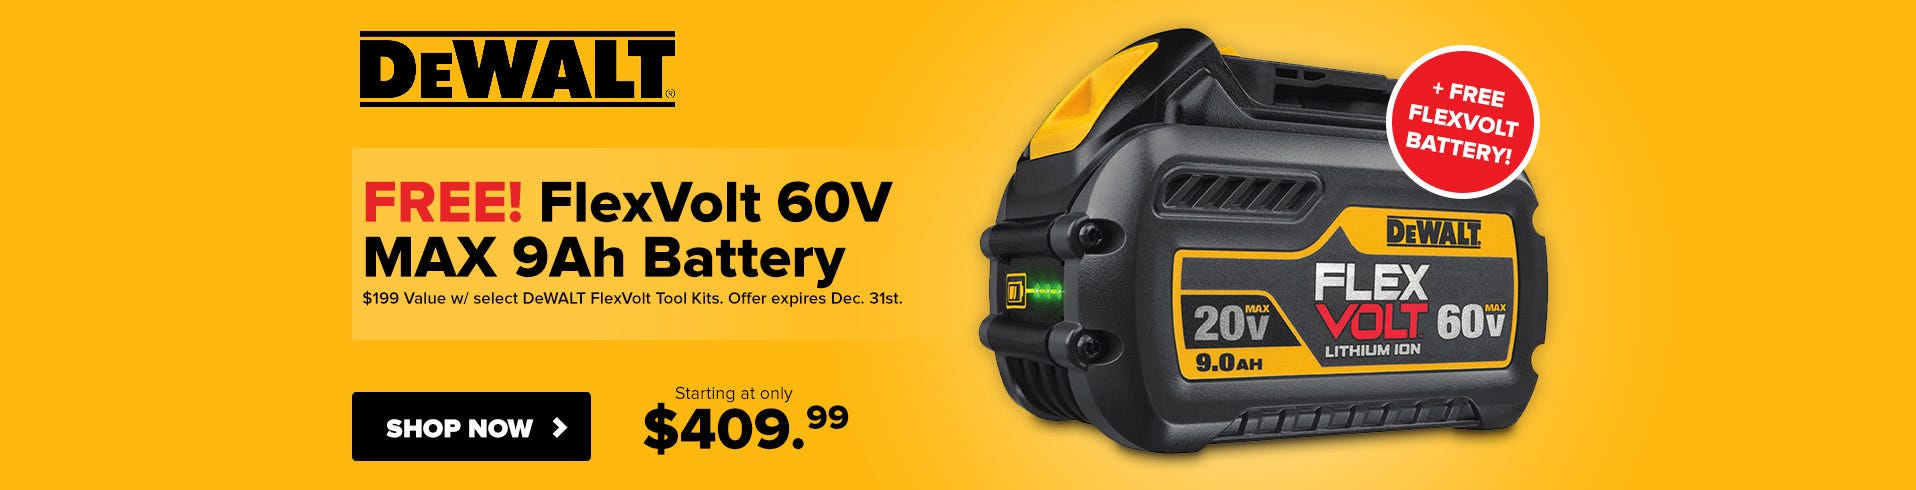 Free DeWALT FlexVolt 60V MAX Battery